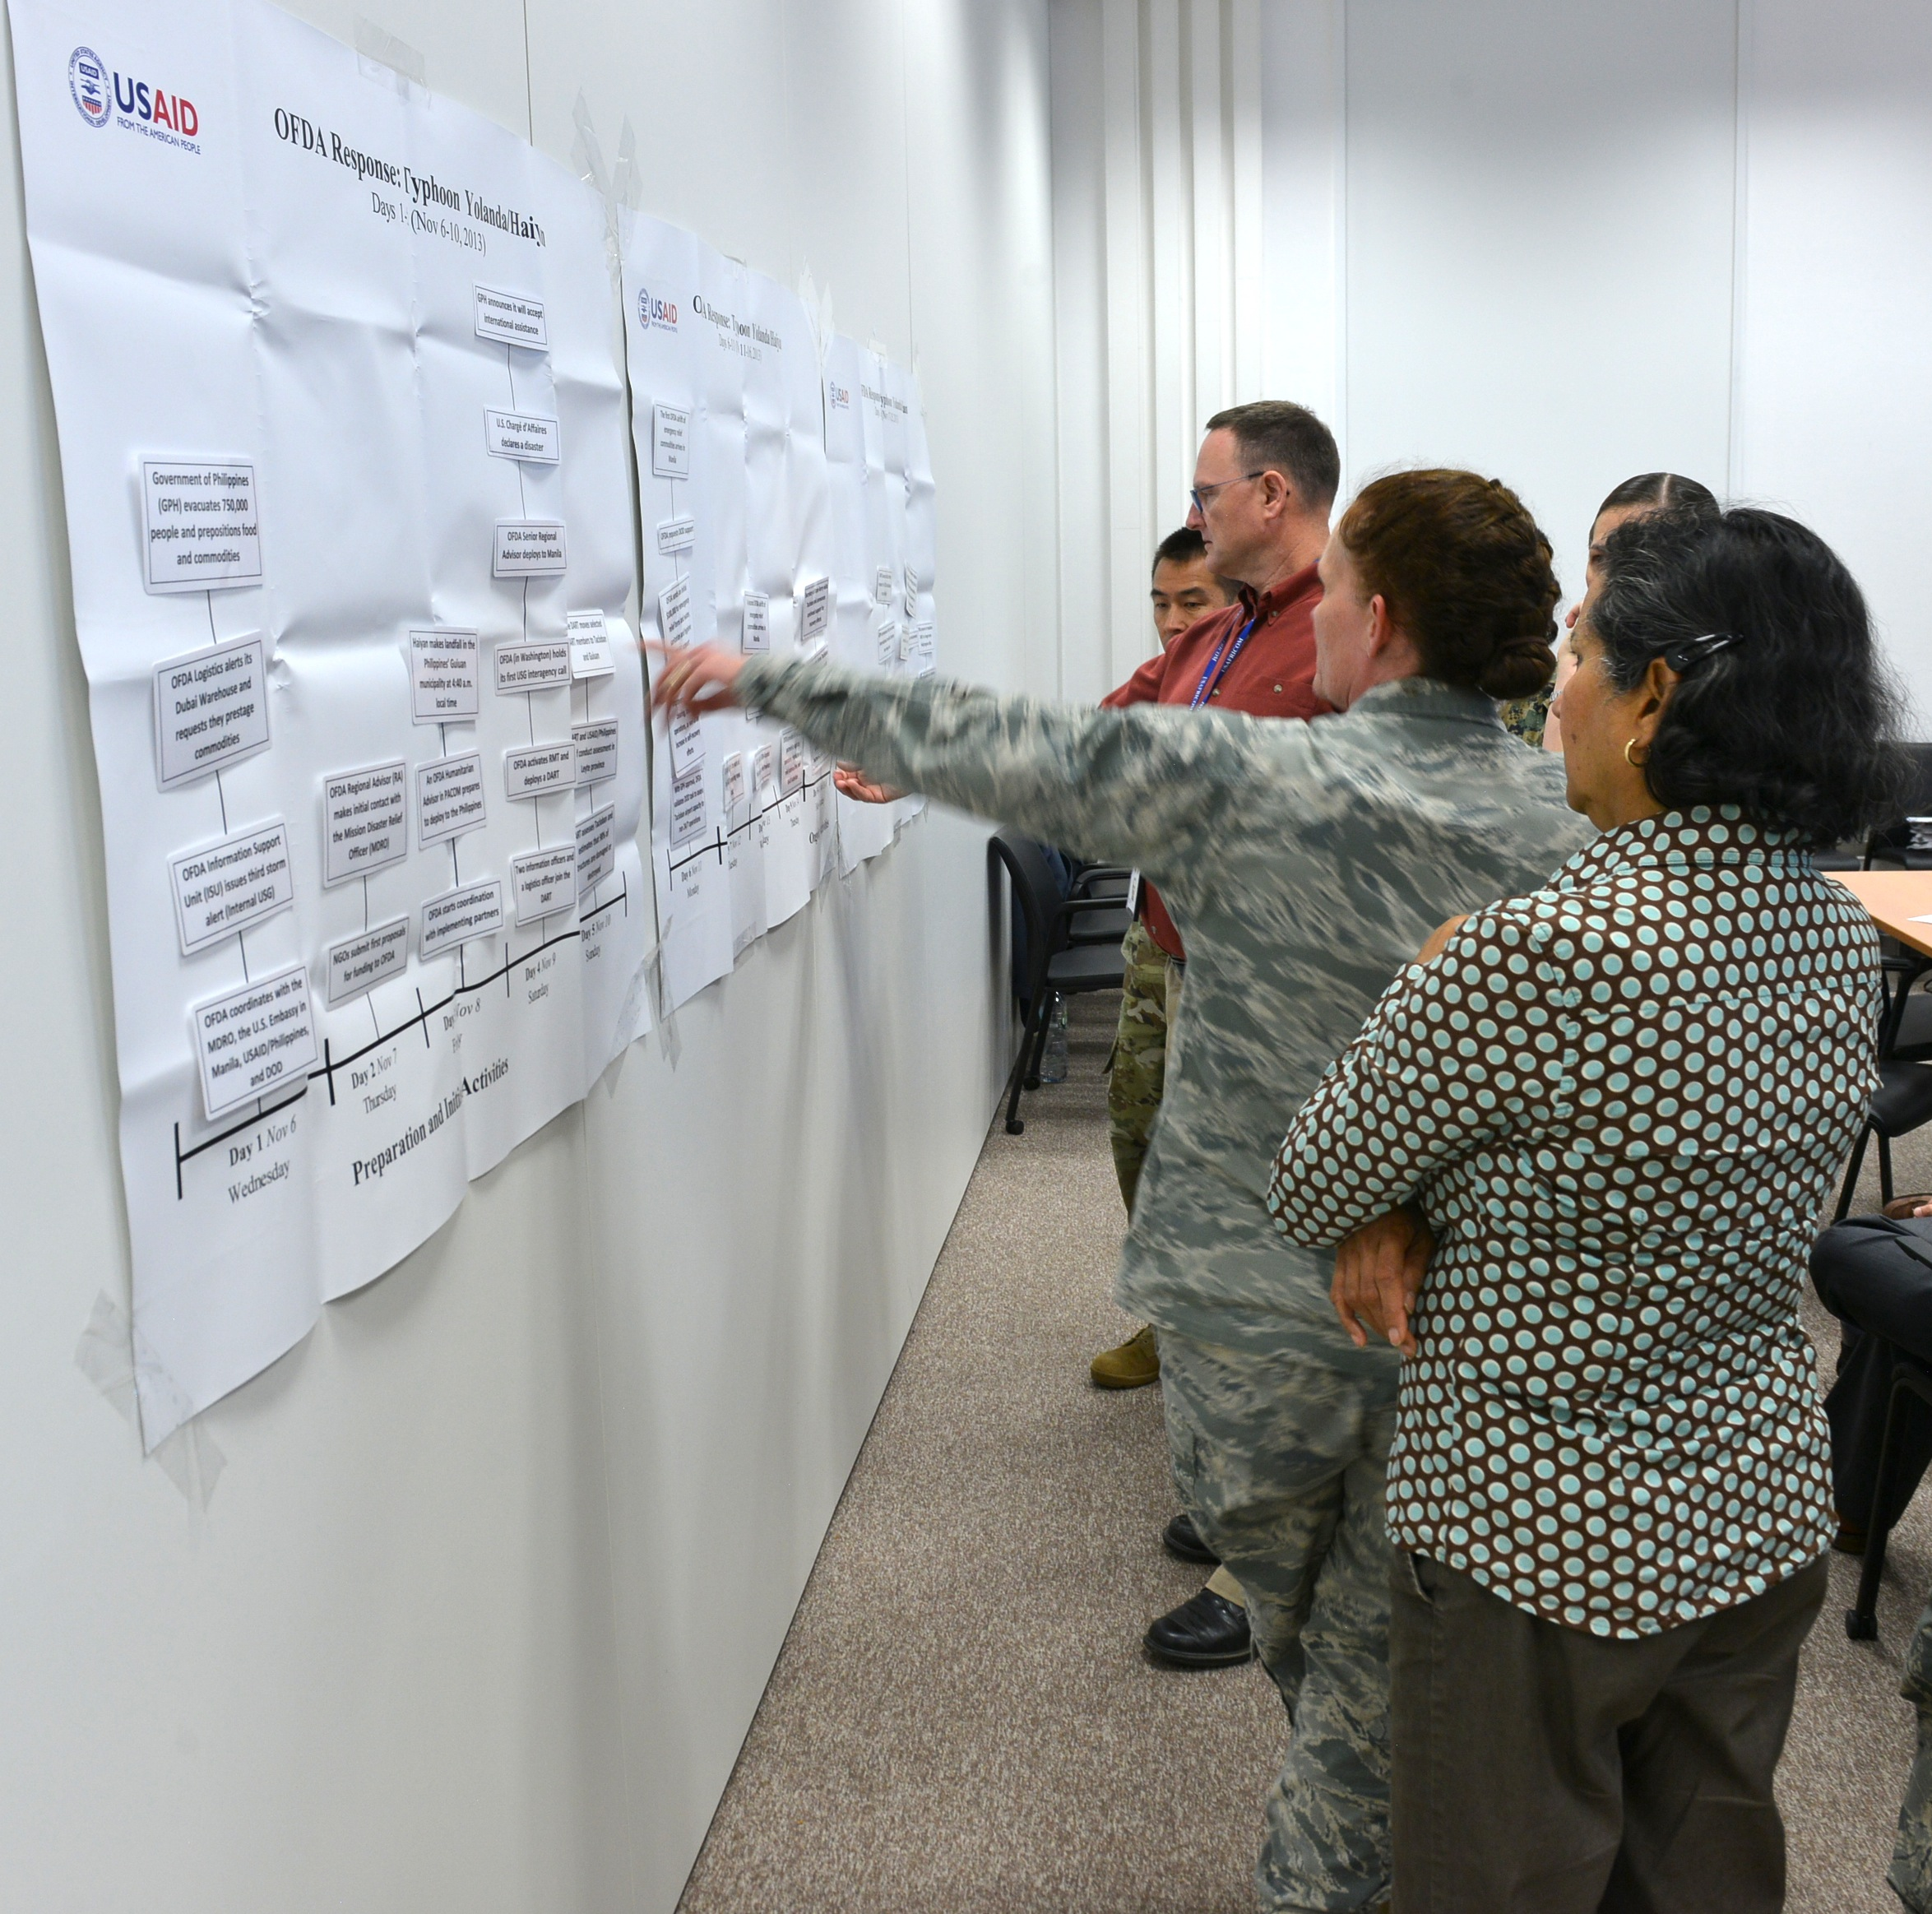 Members of U.S. Africa Command conduct a class exercise, Oct. 3, 2018, during a Joint Humanitarian Operations Course, on Kelly Barracks, Oct. 3-4, 2018. The course focused on roles, responsibilities, and capabilities of the USAID Office of Foreign Disaster Assistance and how it coordinates with Department of Defense in a disaster response.